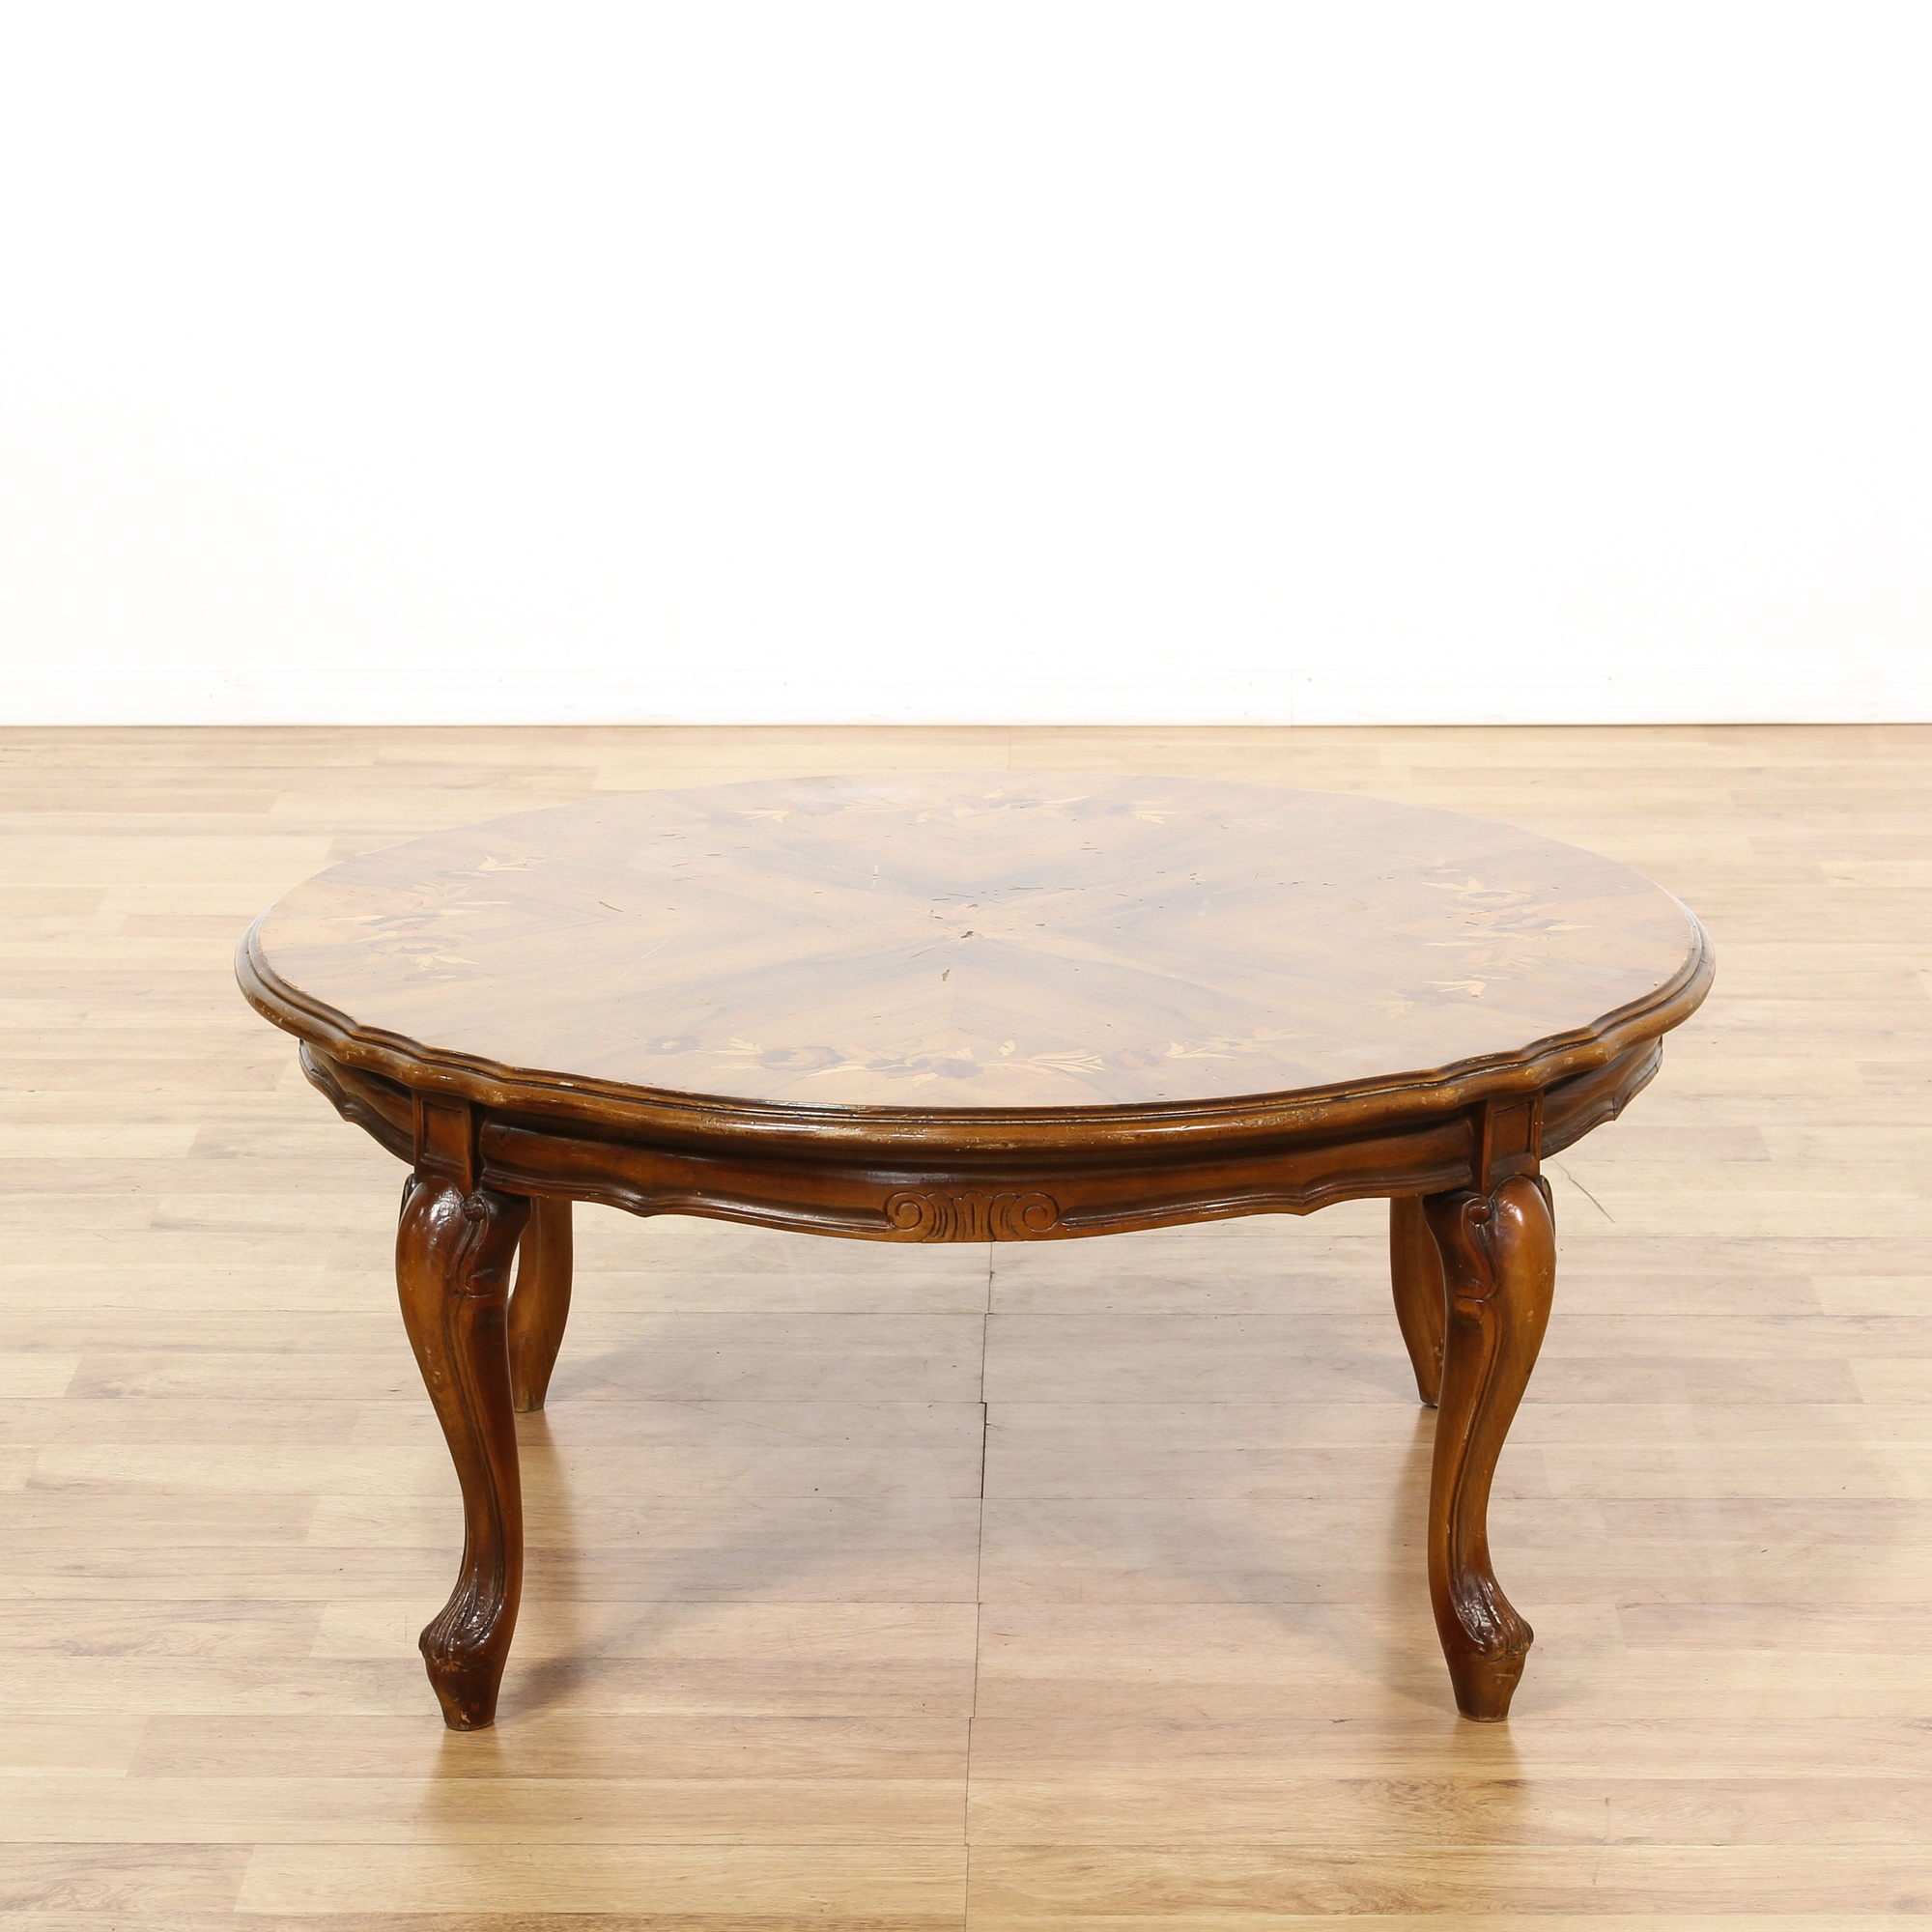 Round Floral Marquetry Inlay Coffee Table Loveseat Vintage Furniture San Diego Los Angeles